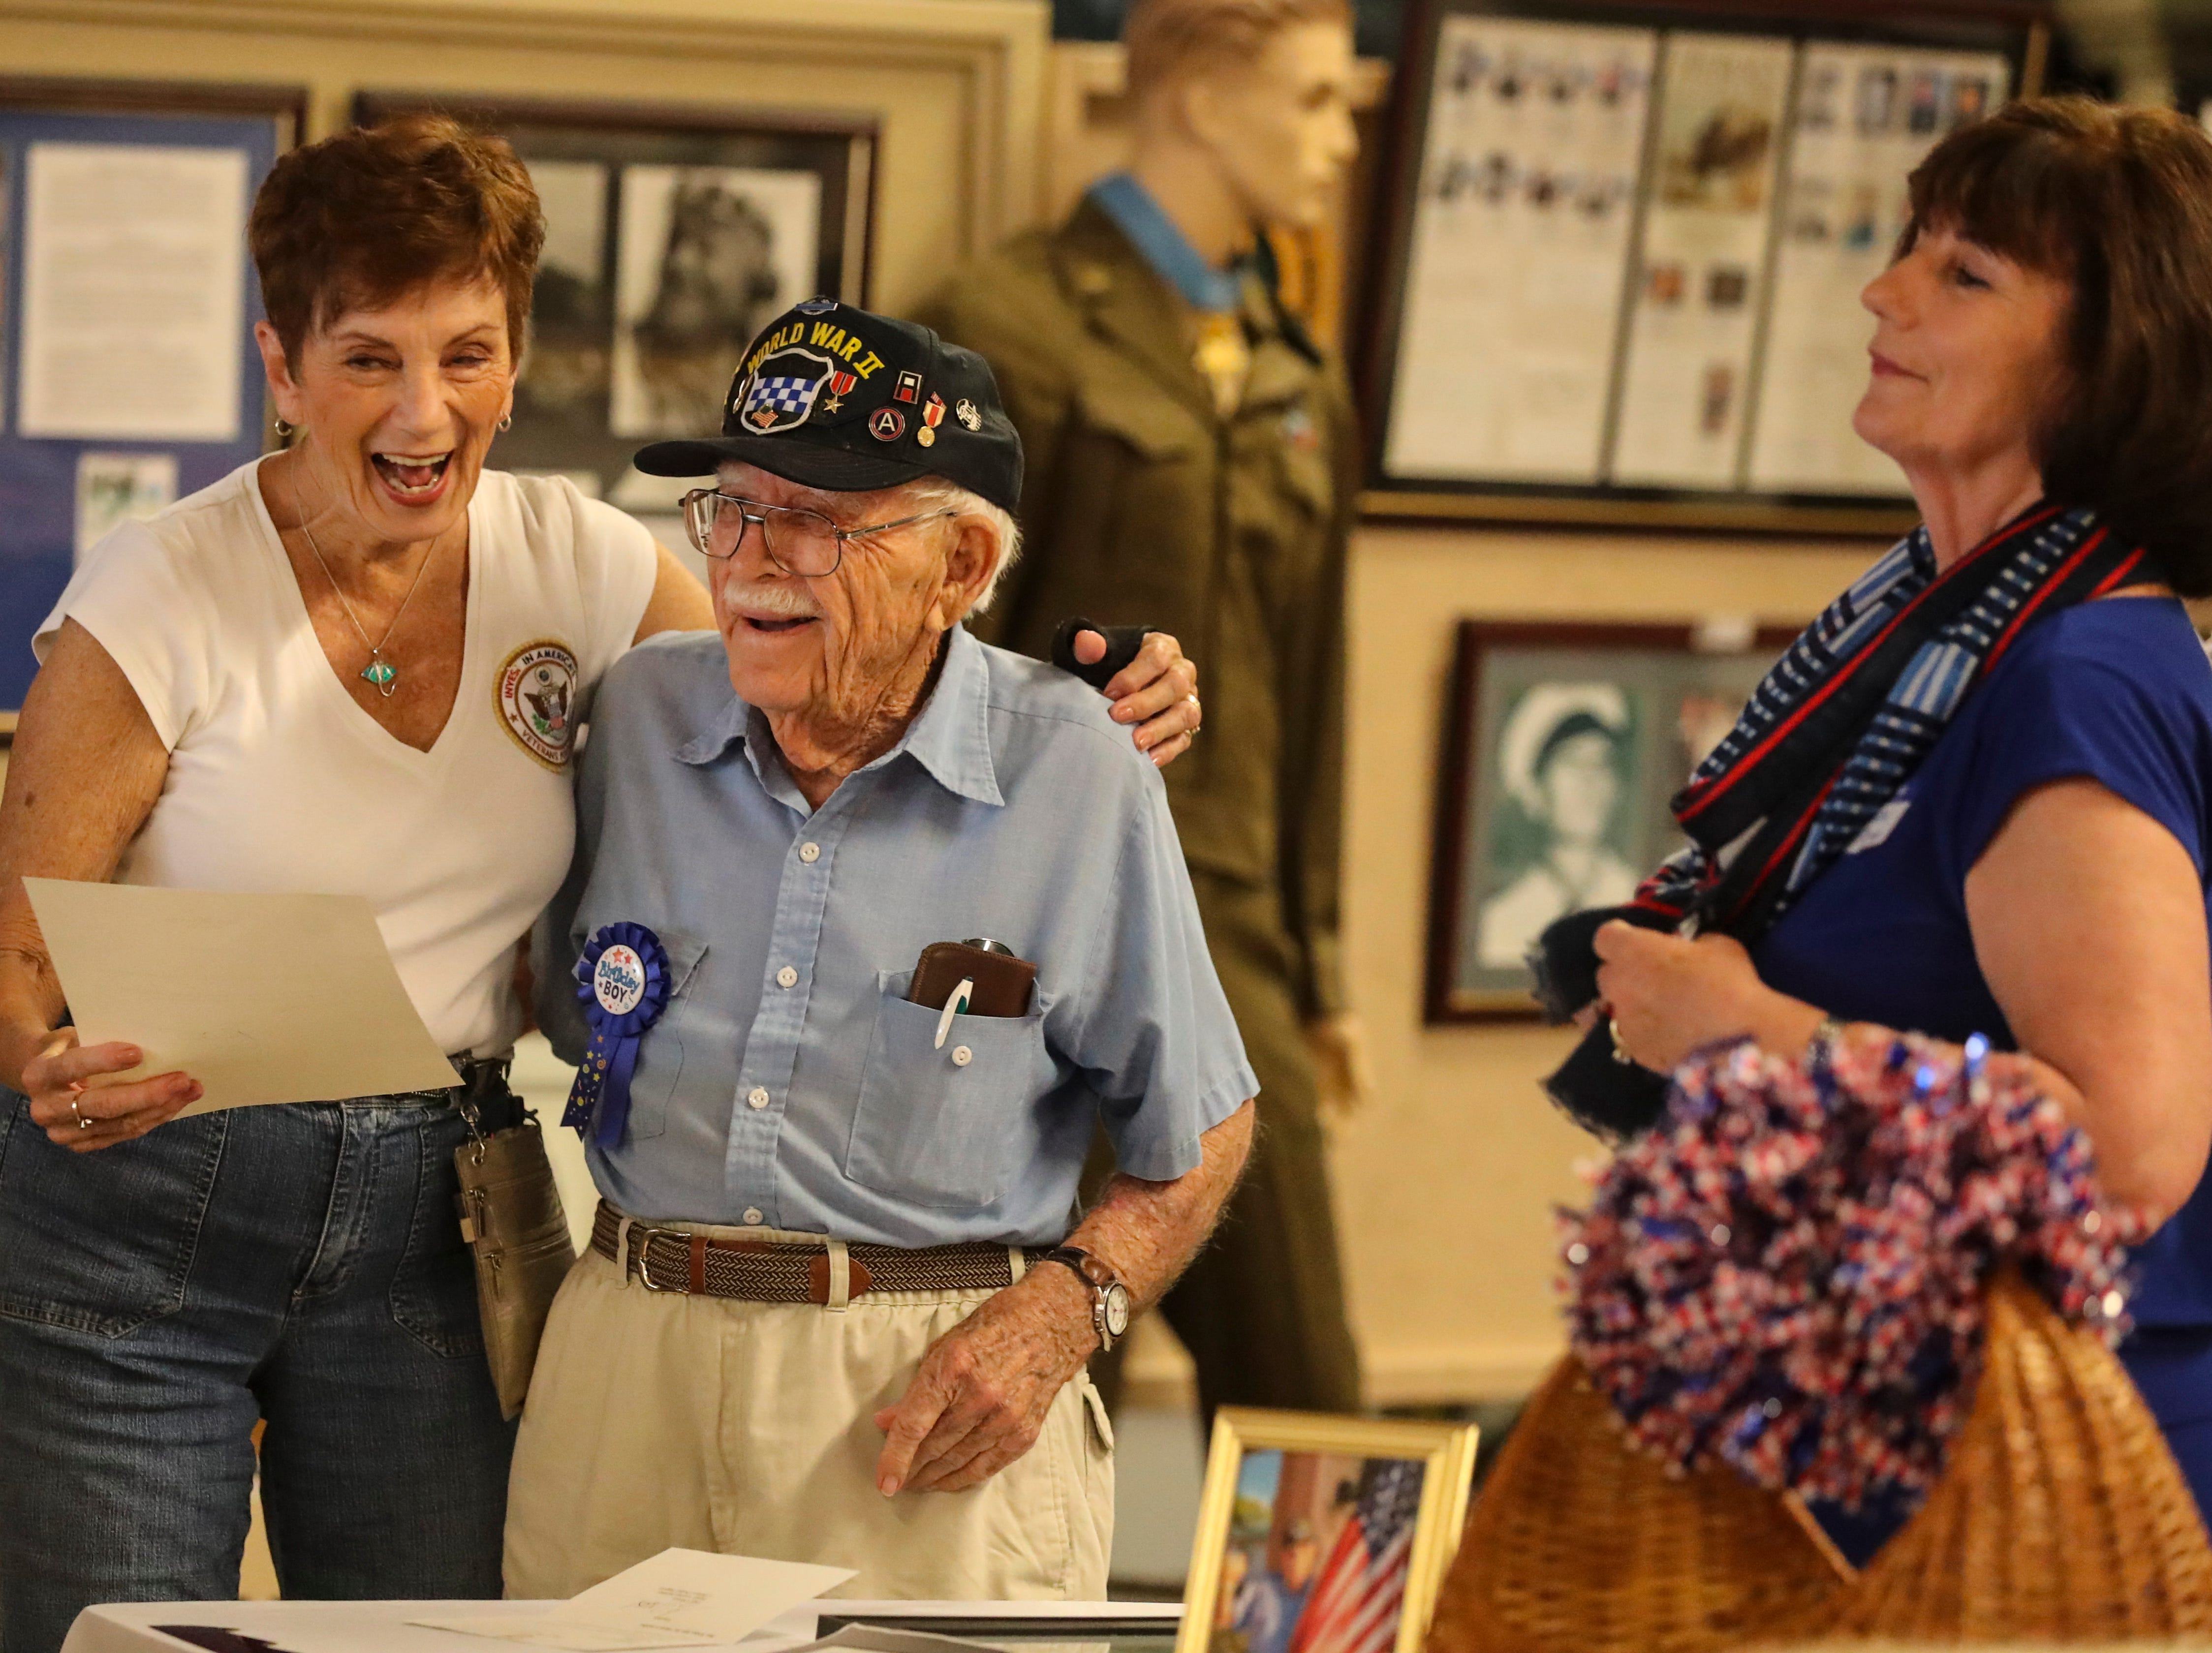 William Workman turned 97. His family and friends had a surprise birthday party at the Southwest Florida Military Museum in Cape Coral. Bill was with the 99th Division that landed in Europe on Nov. 17, 1944, then shipped to Bastogne. Mary Anne Passatore, of Fort Myers and a volunteer with the museum, shares a laugh with Bill before she reads a letter from Governor DeSantis. Wanda Stump looks on.